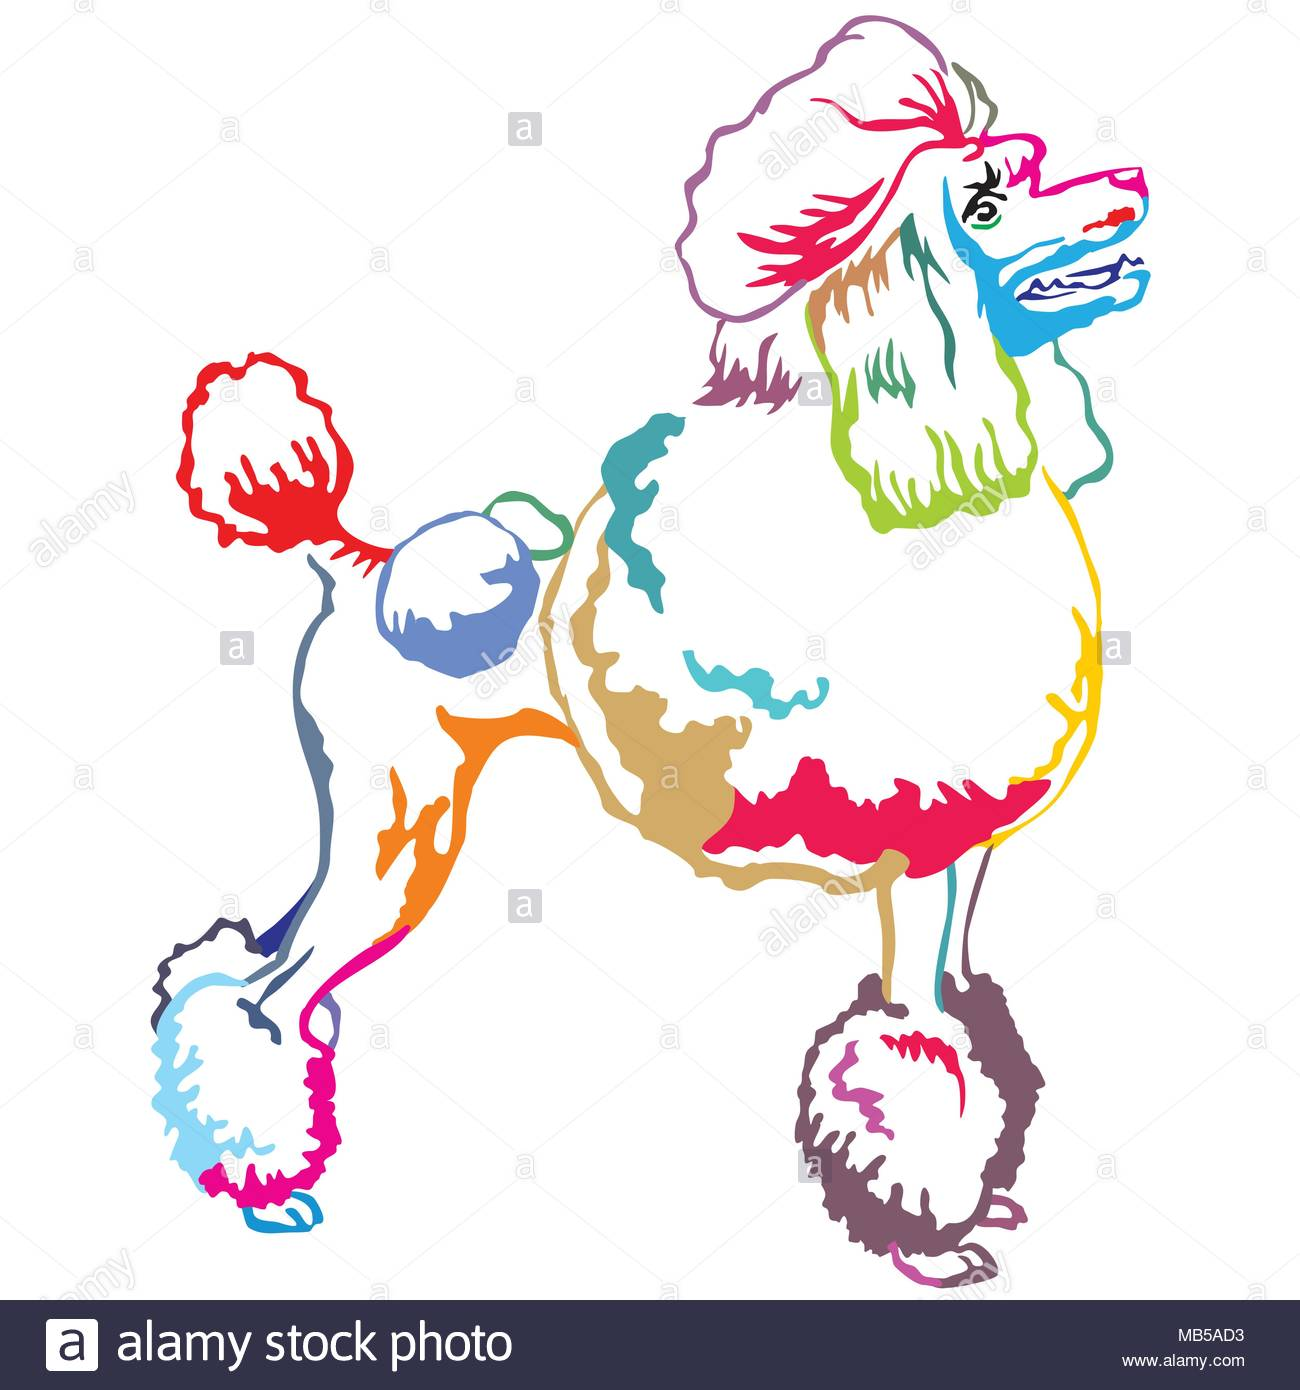 french poodle clipart at getdrawings com free for personal use rh getdrawings com french poodle clipart free Poodle Clip Art